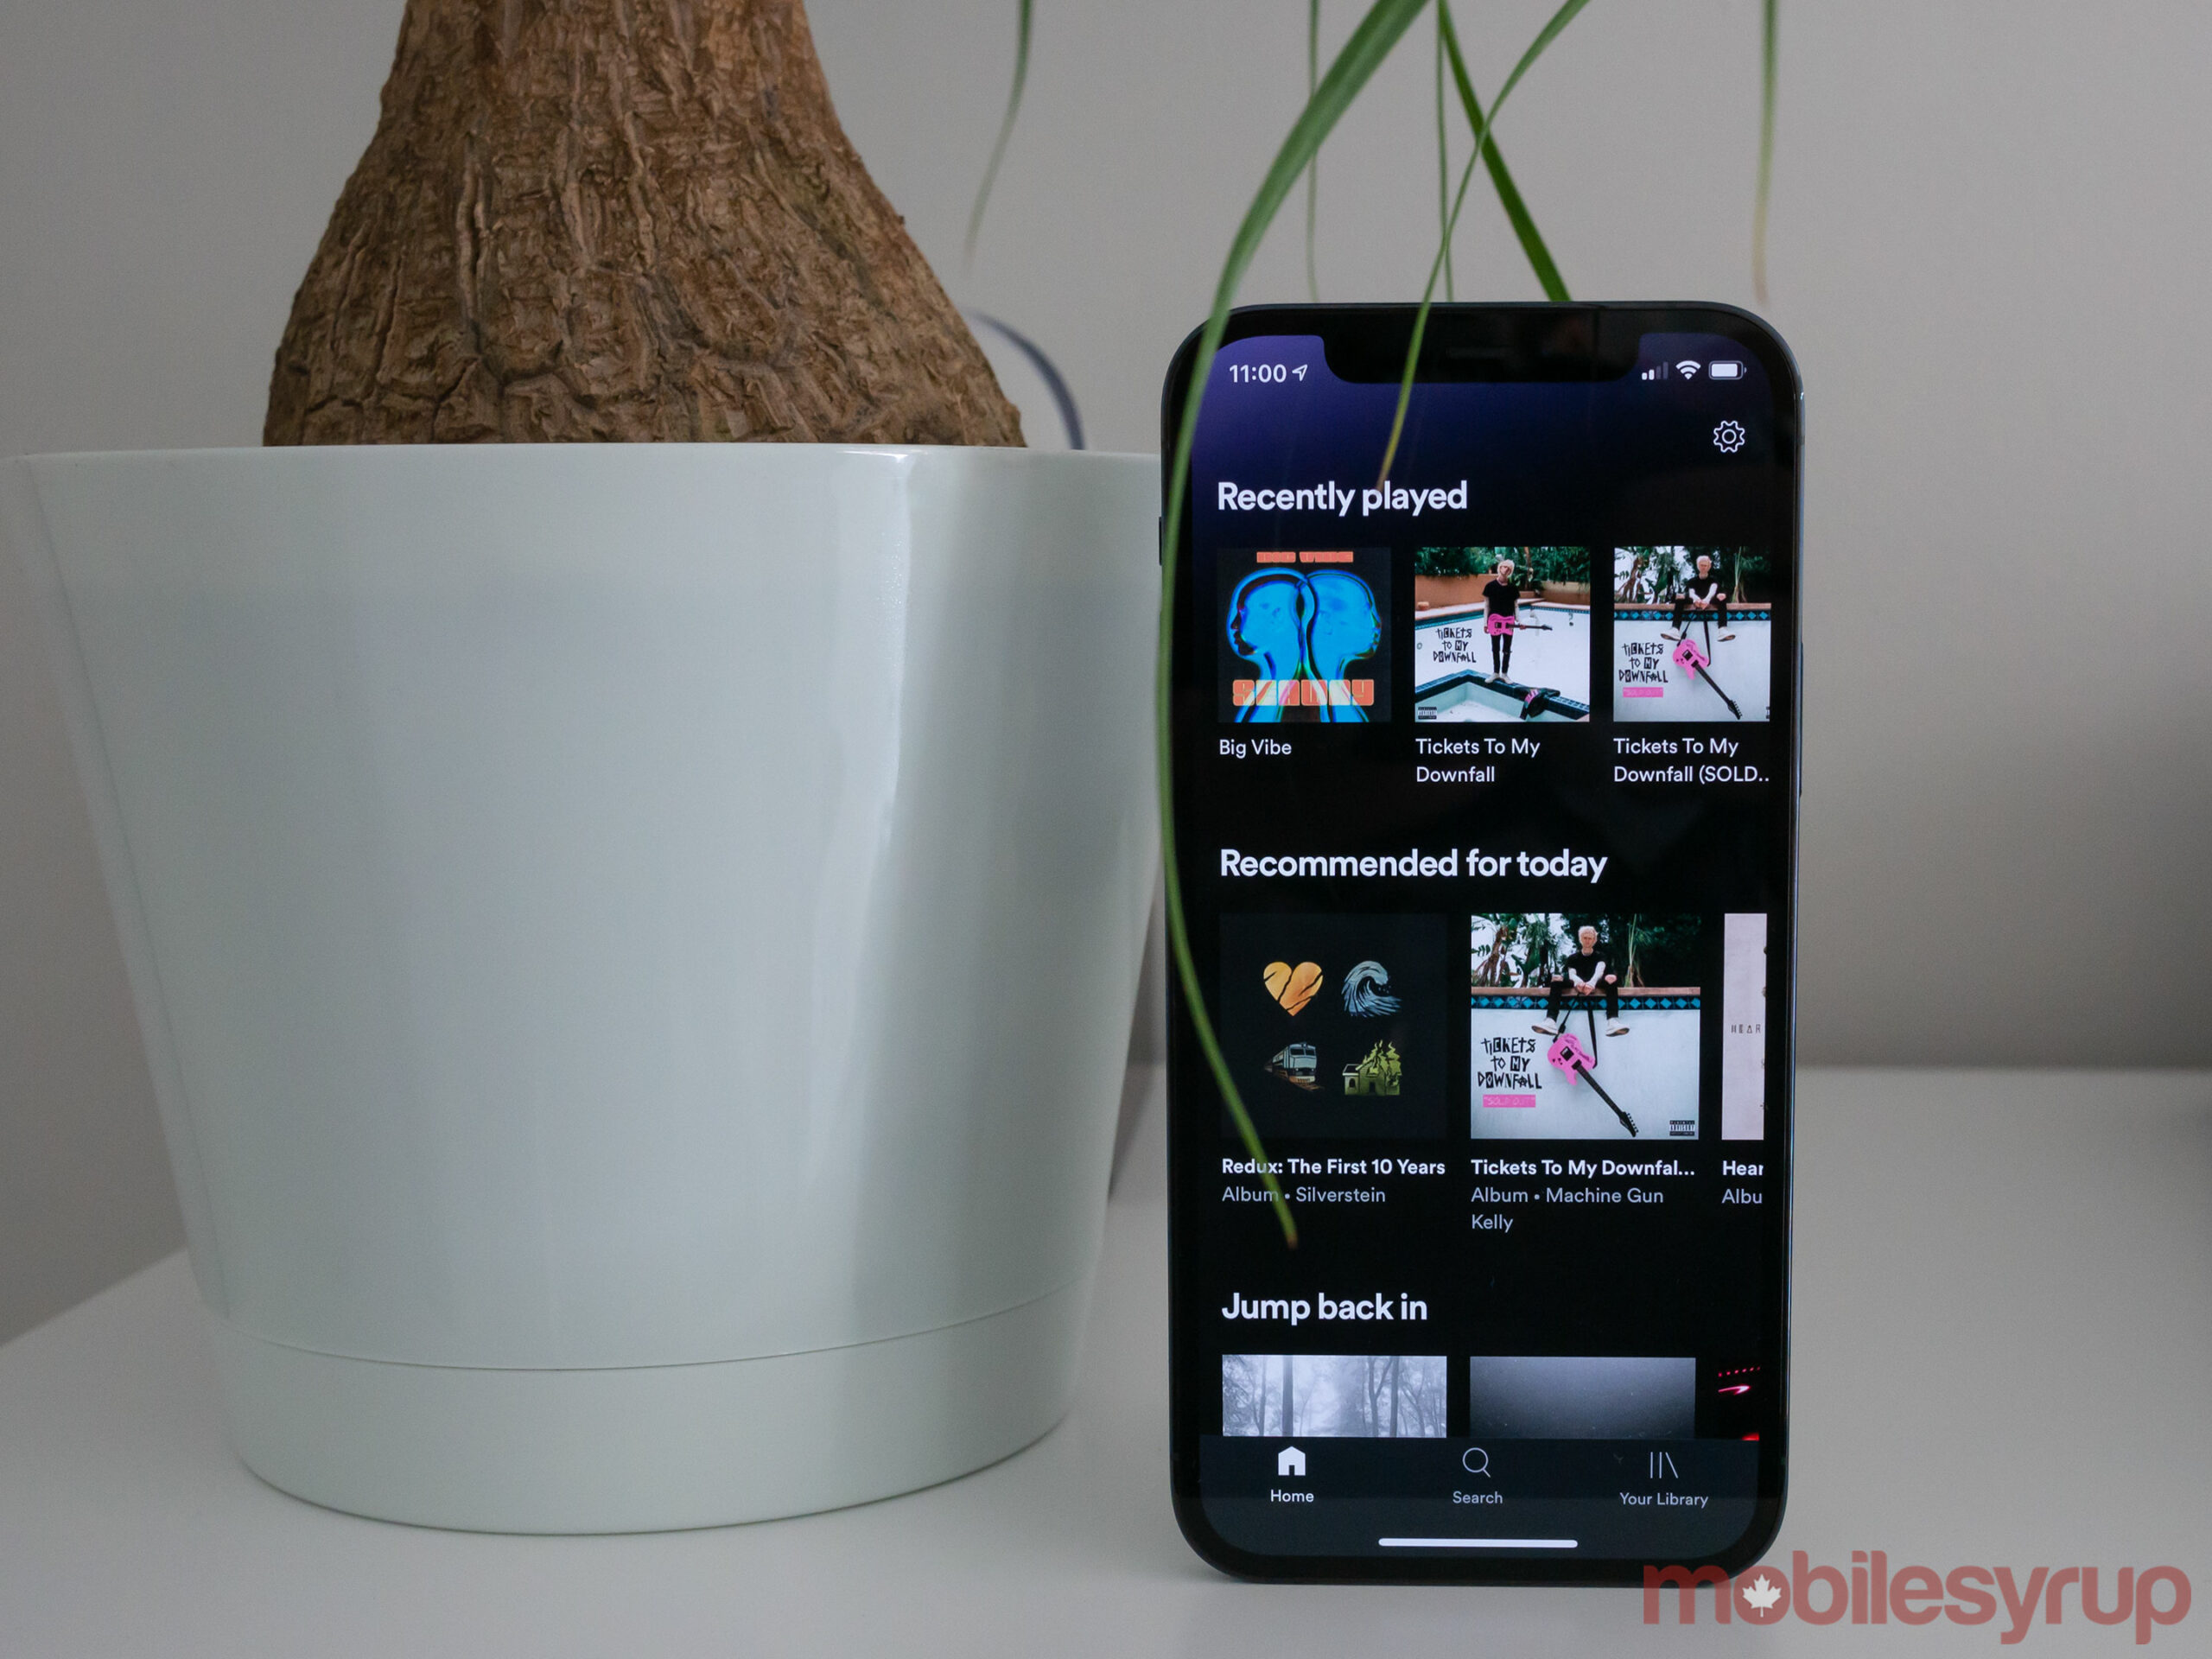 iPhone 12 Pro with Spotify open